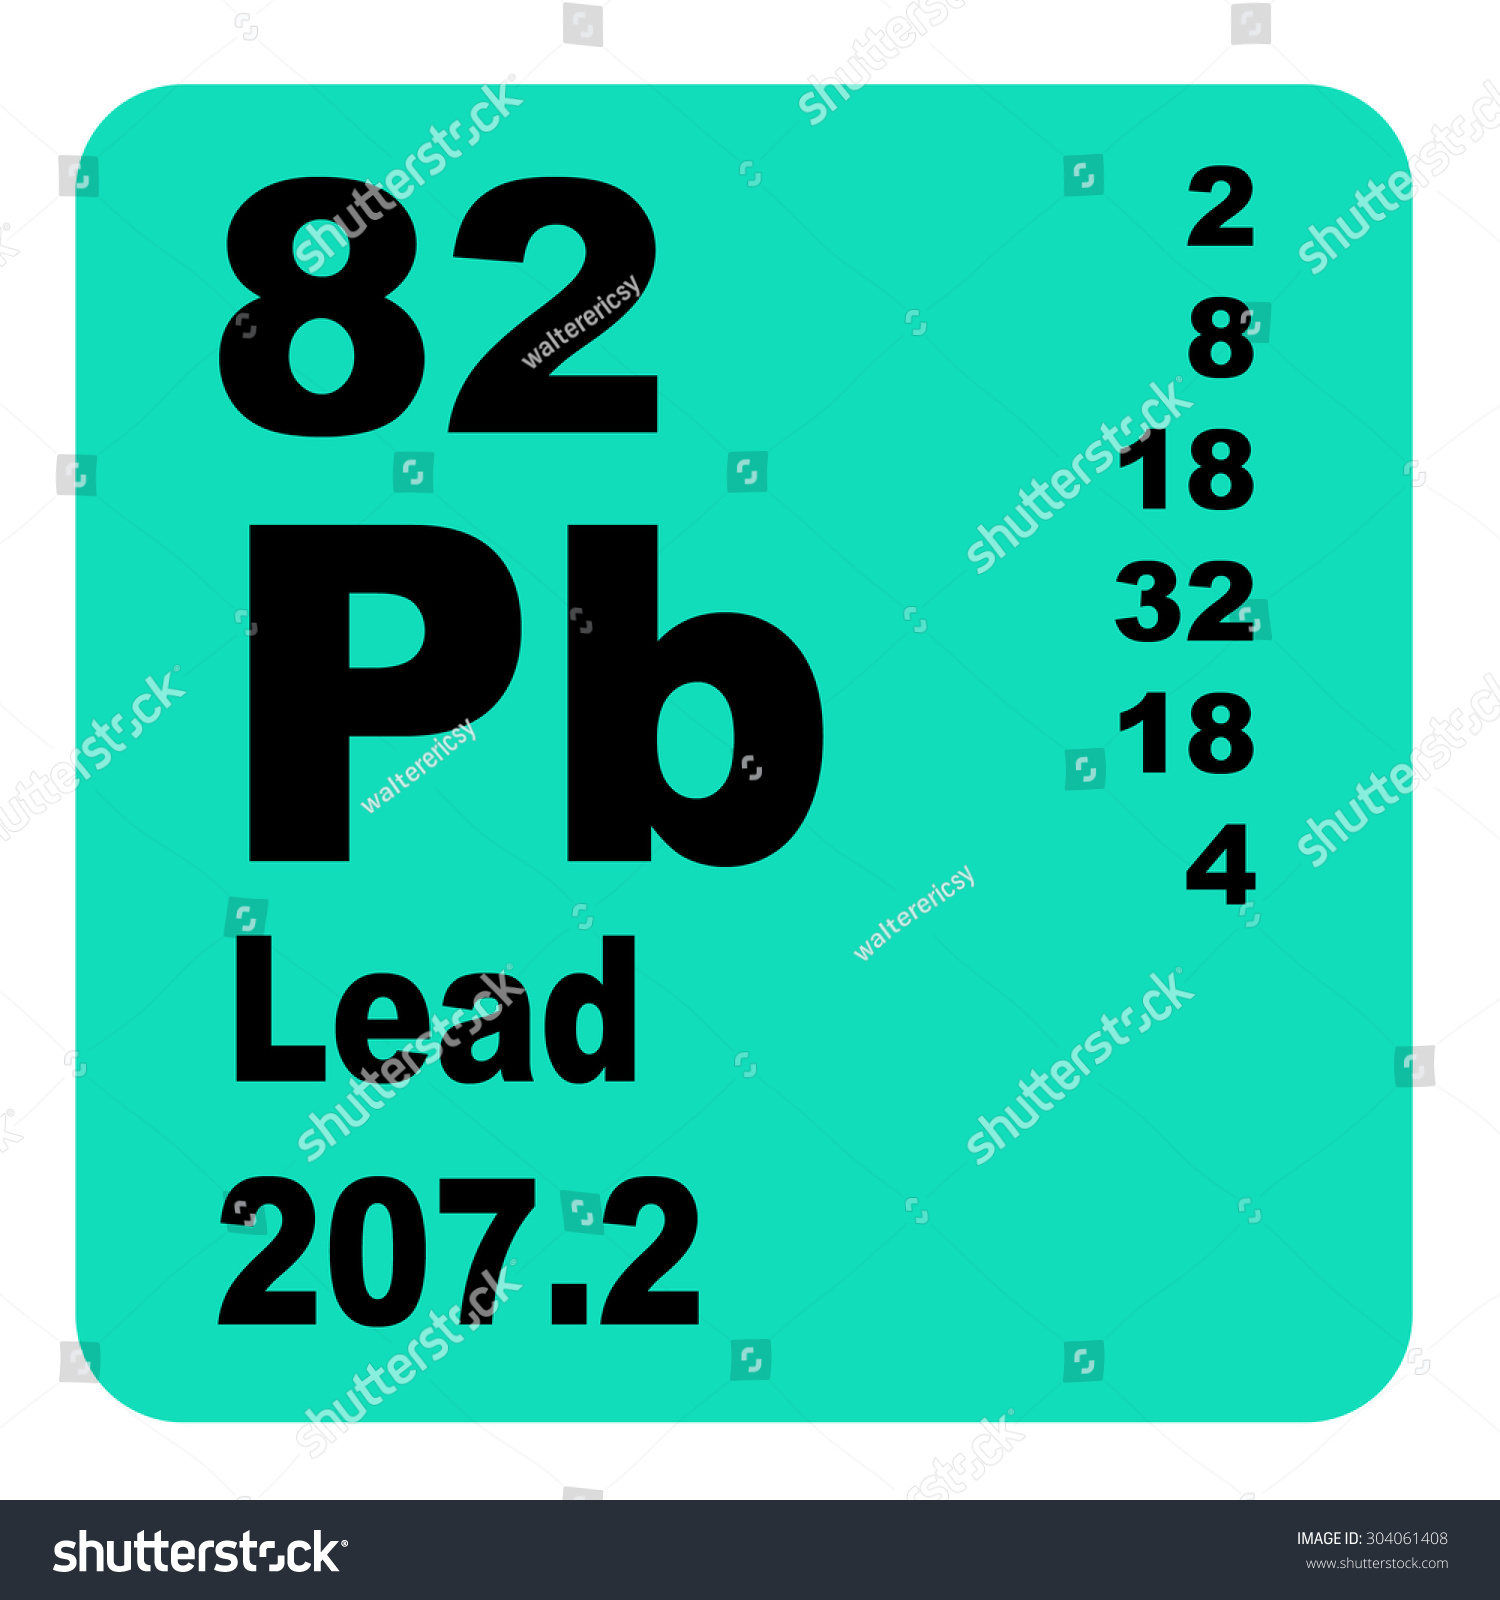 Led periodic table image collections periodic table images symbol for lead on periodic table image collections periodic led periodic table gallery periodic table images gamestrikefo Gallery